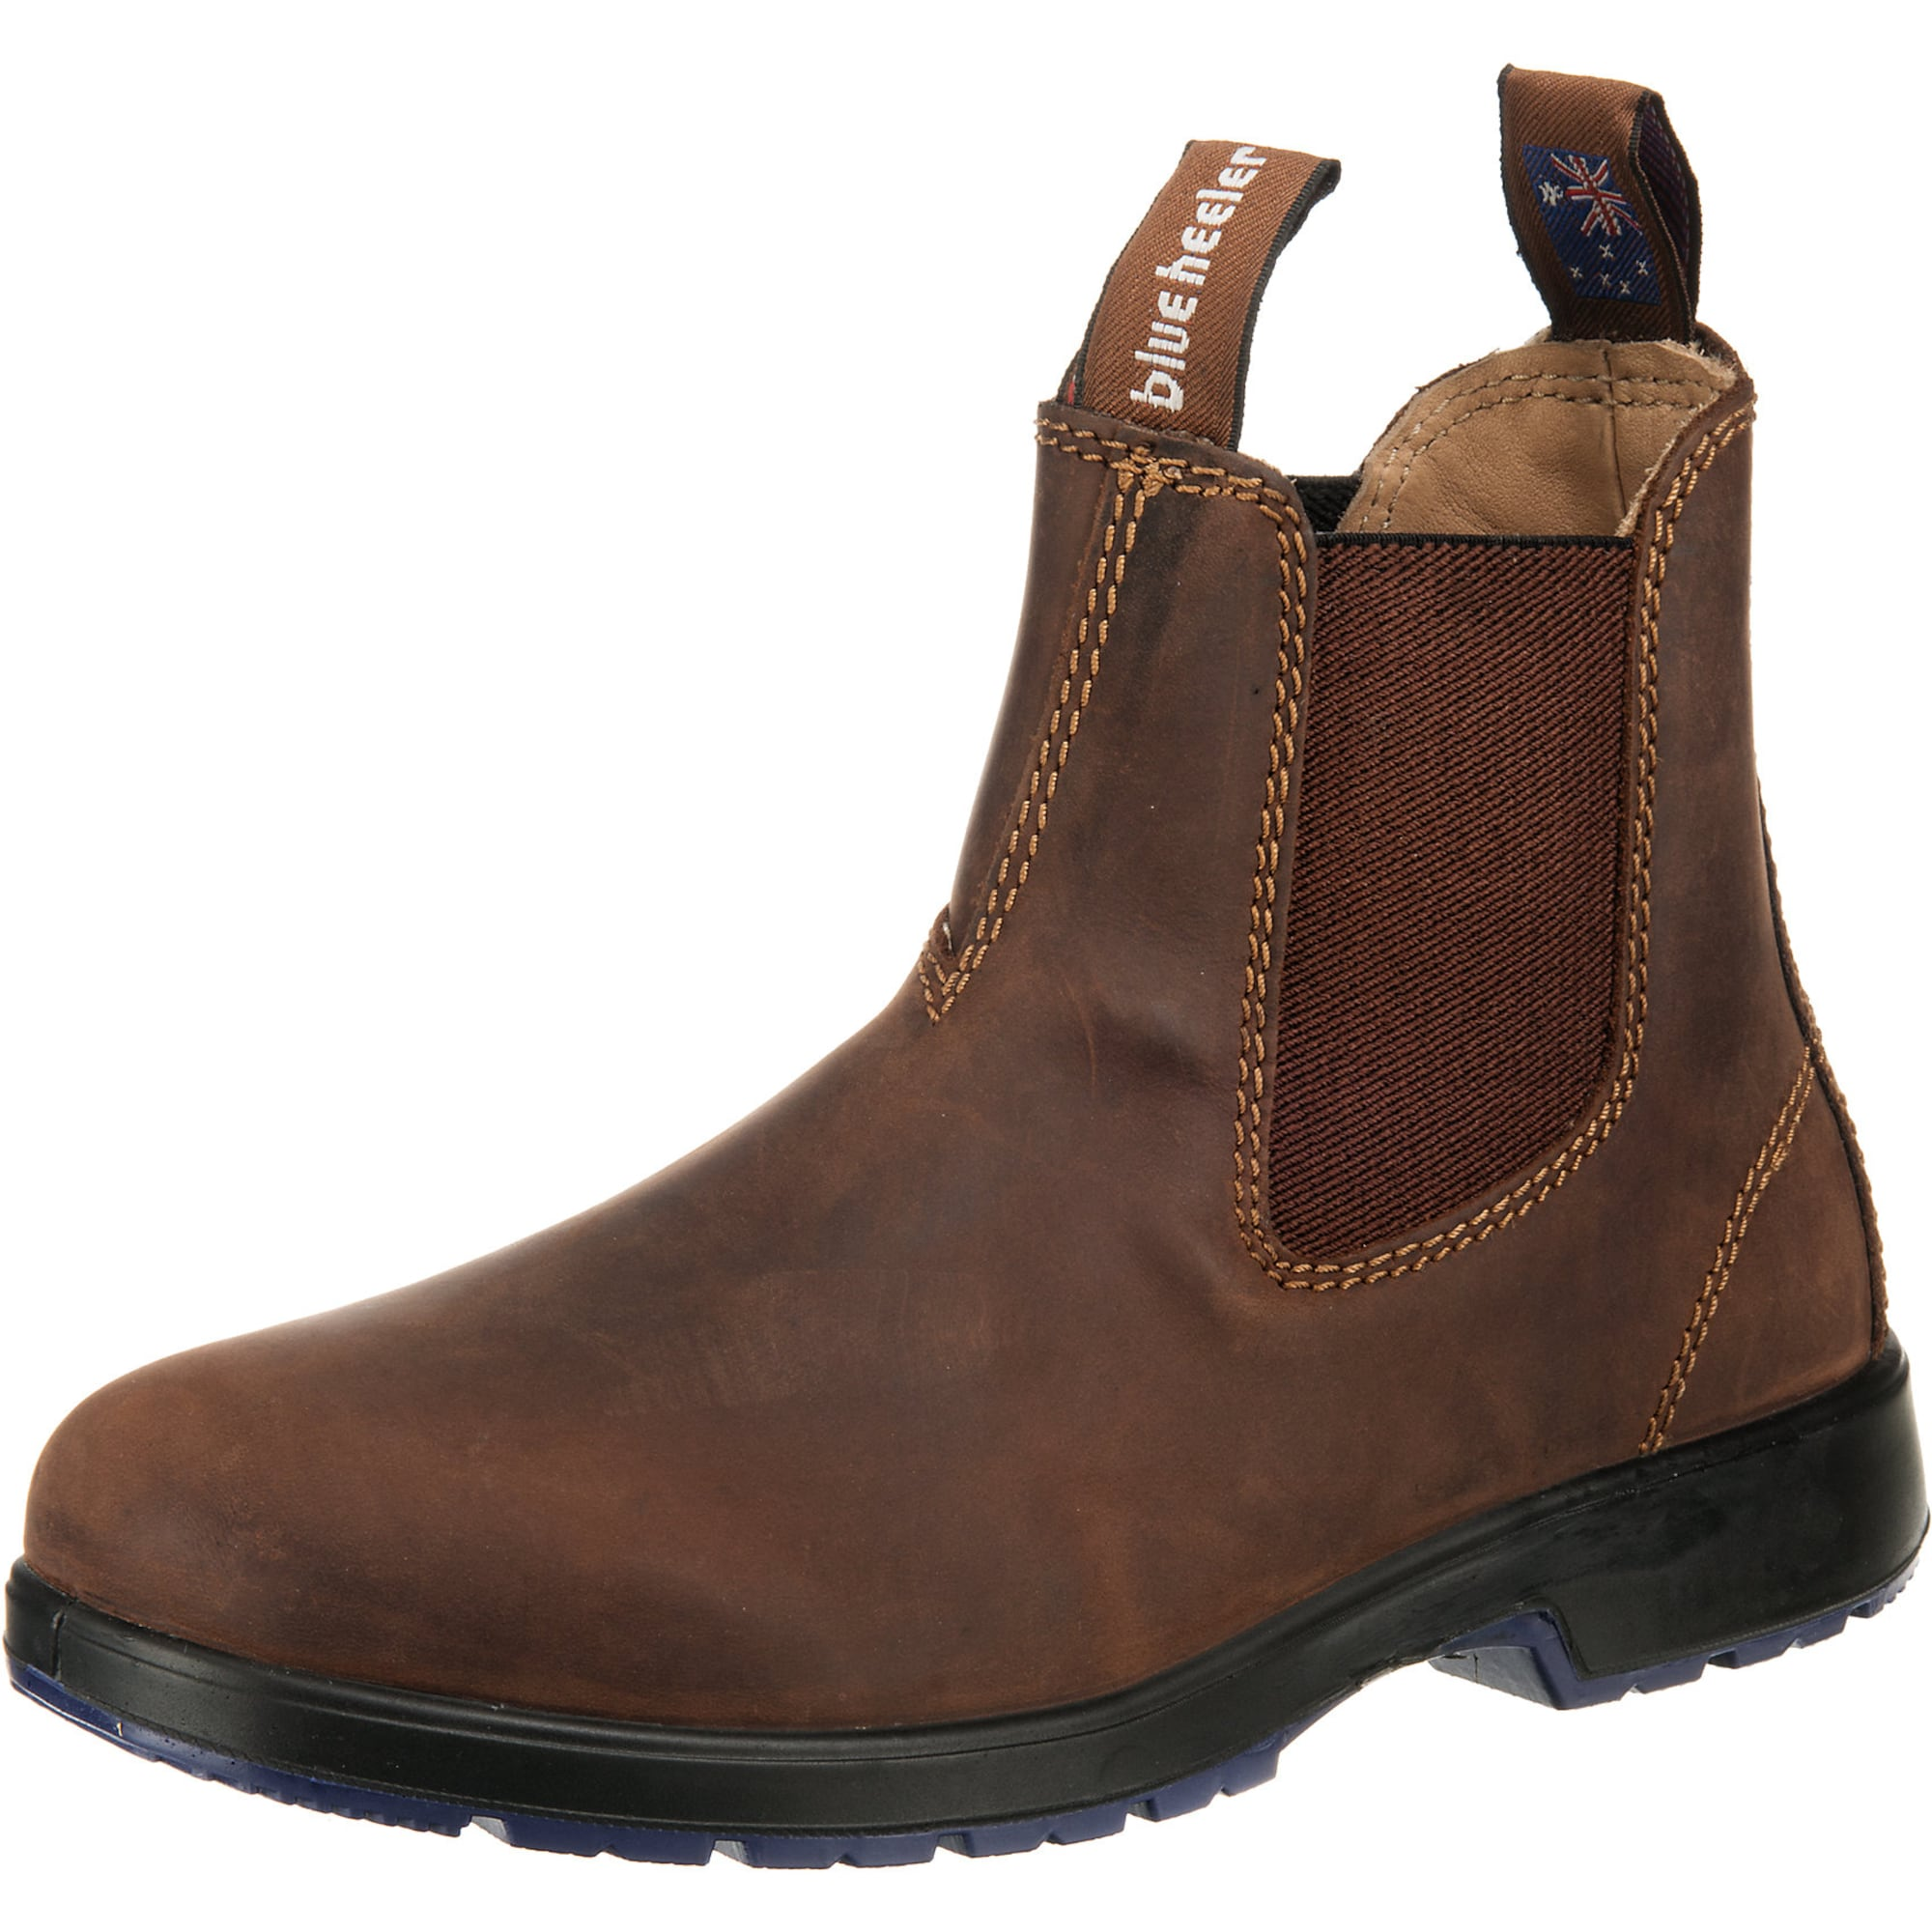 Chelsea Boots 'Outback' | Schuhe > Boots > Chelsea-Boots | Blue Heeler